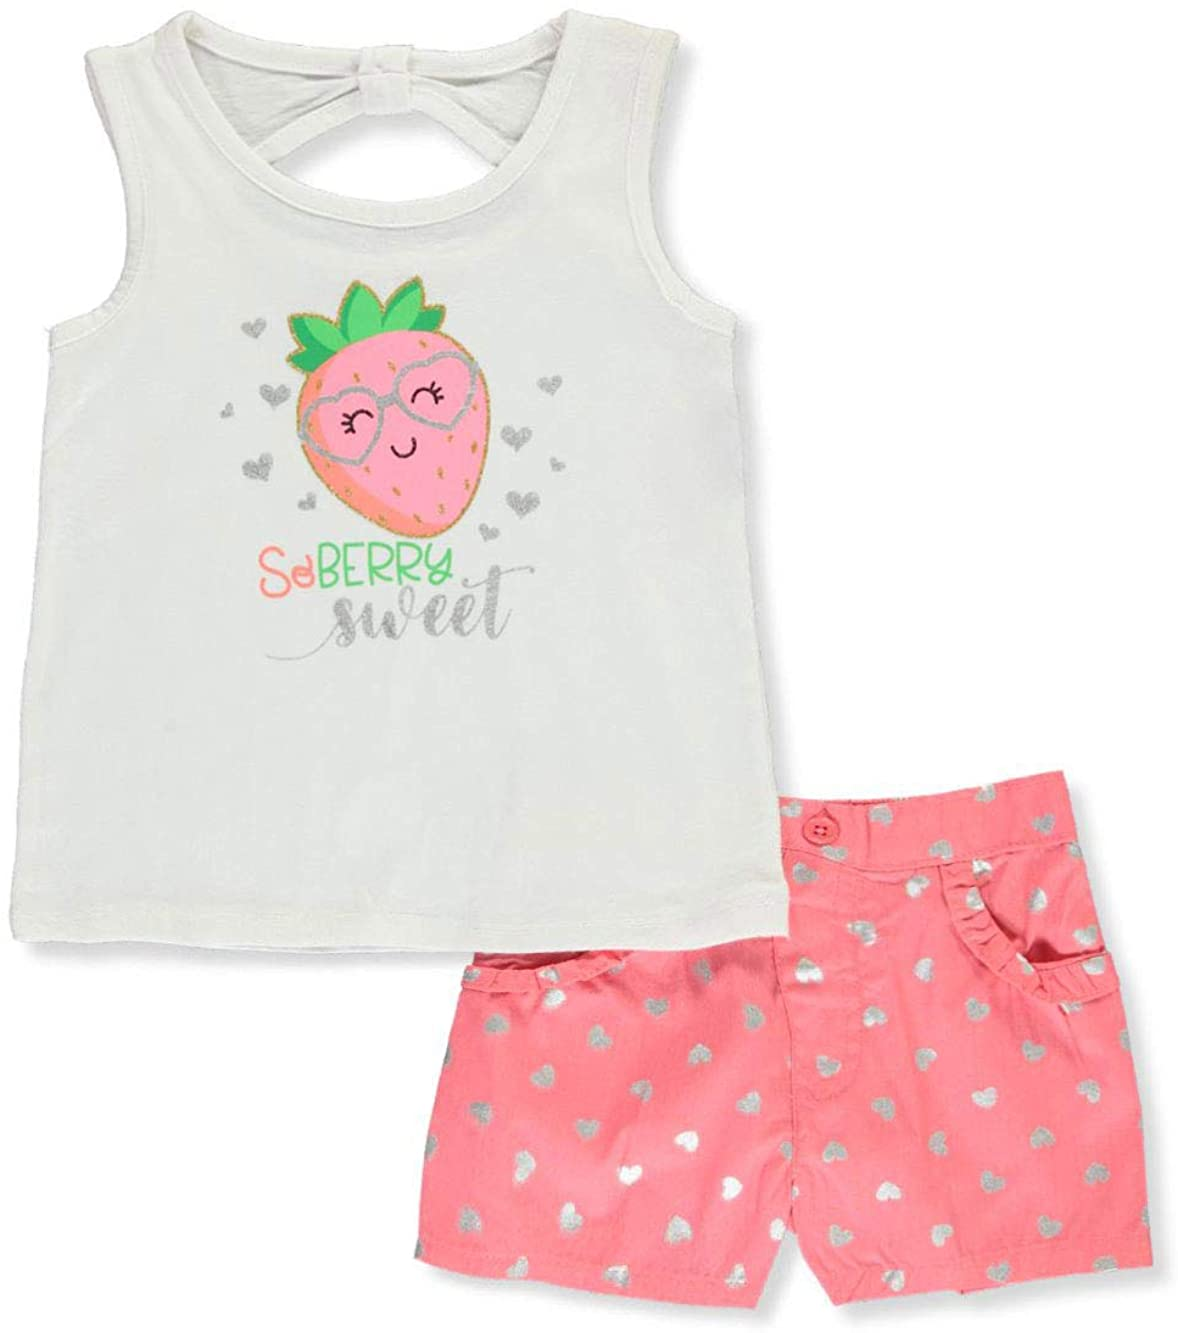 Real Love Girls' So Berry Sweet 2-Piece Shorts Set Outfit